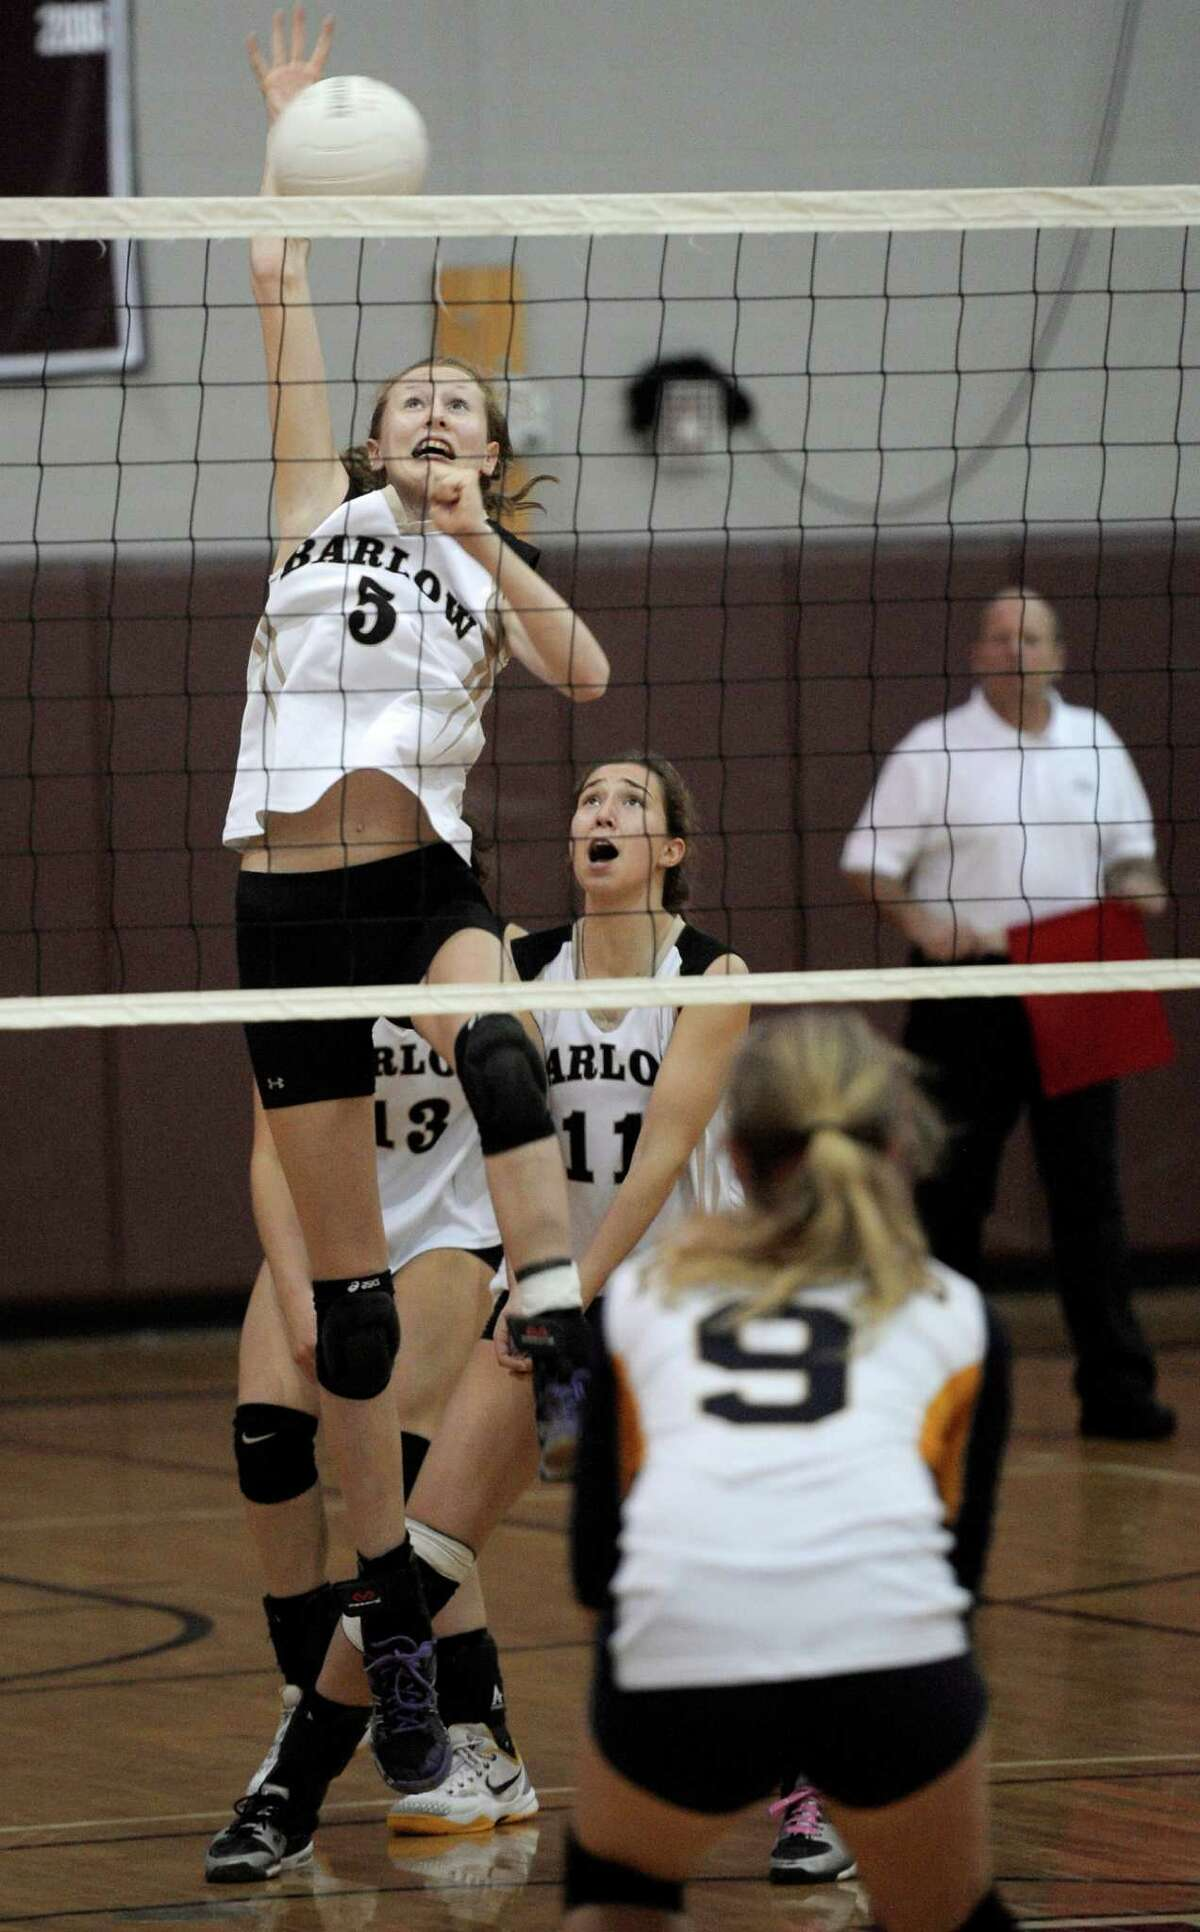 Barlow's Lia Spear (5) spikes the ball over Weston's Melissa Welsh (9) during the SWC girls volleyball Championship match between Weston and Joel Barlow high schools, on Saturday night, November 1, 2014. Barlow's Kaitlyn (13) and Dani Williams (11) are behind Spear.